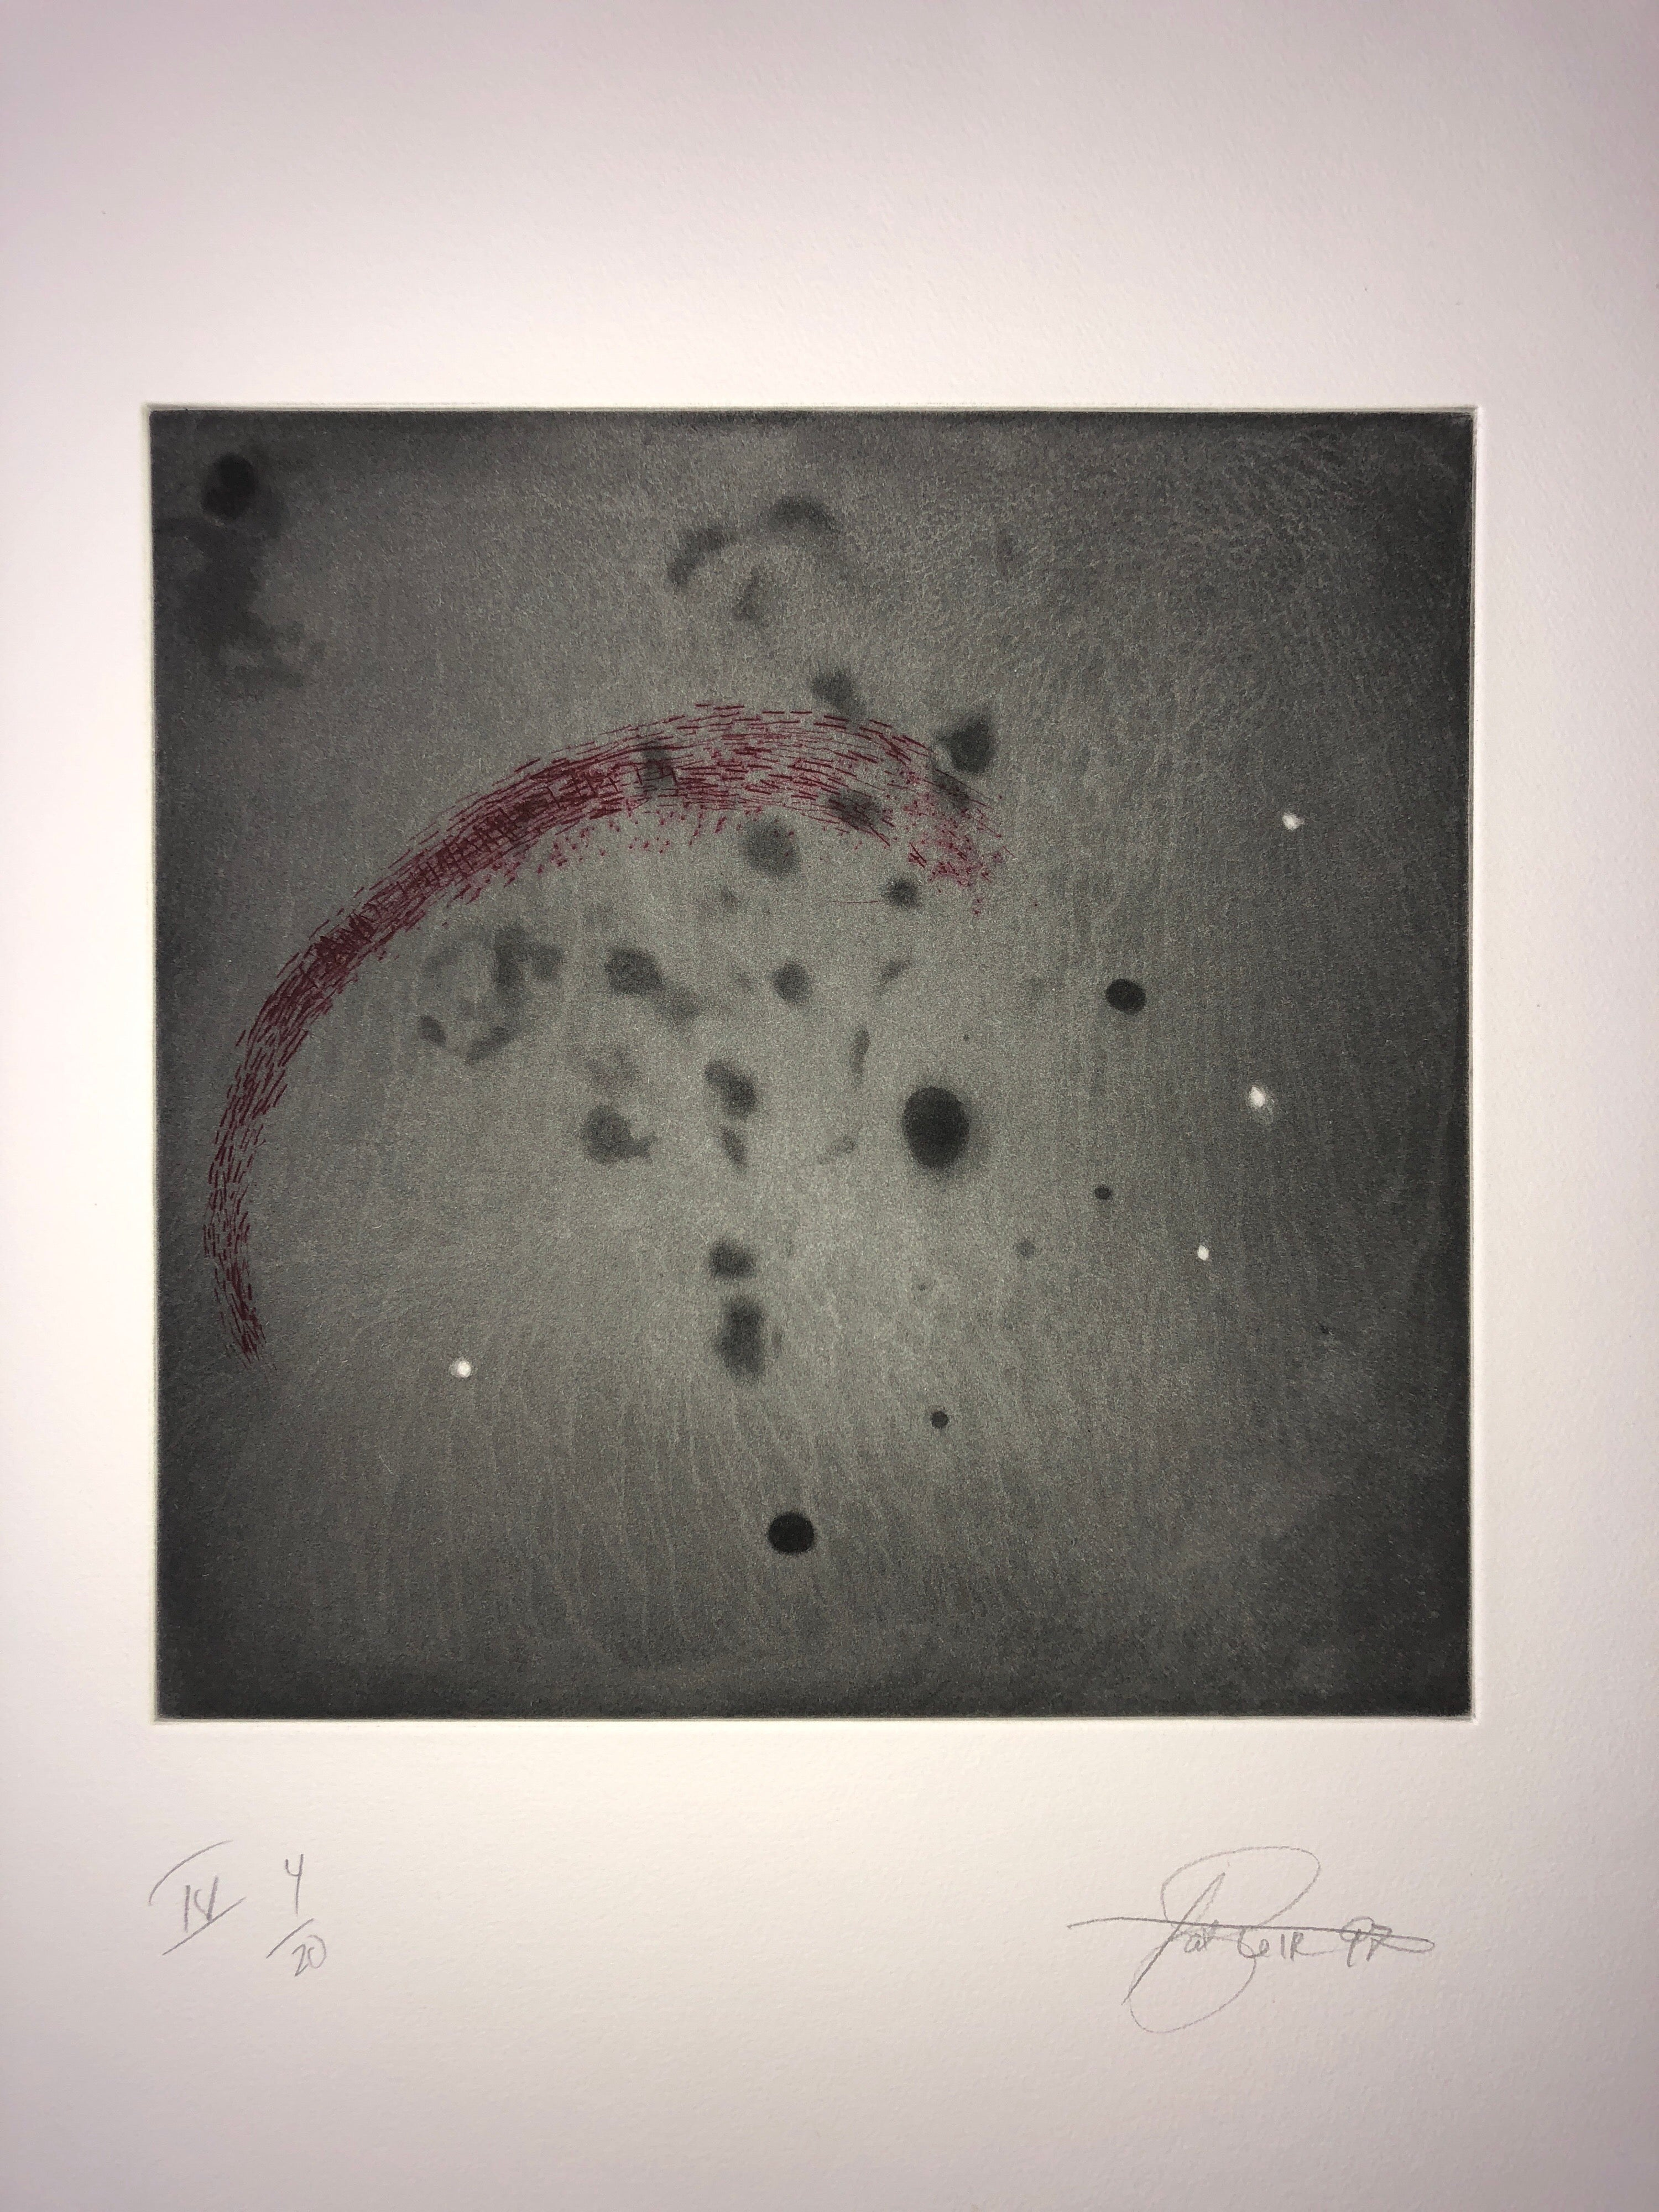 Comet, Outer Space Dark Series Aquatint Etching Color Abstract Expressionist